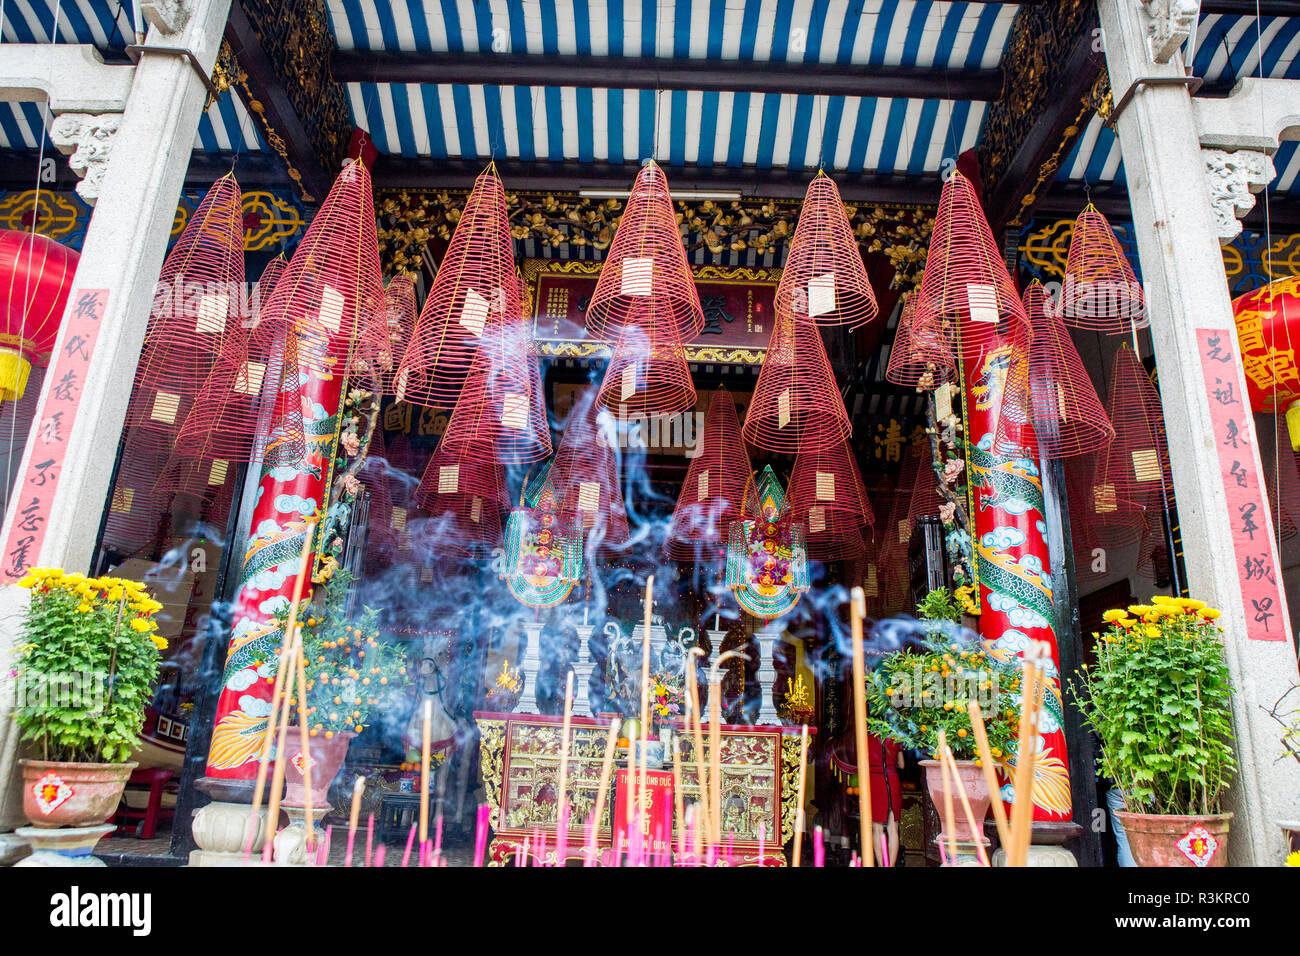 Pagoda with incense hanging from the ceiling. Hoi An. Tet Festival, New Year celebration. Vietnam. - Stock Image